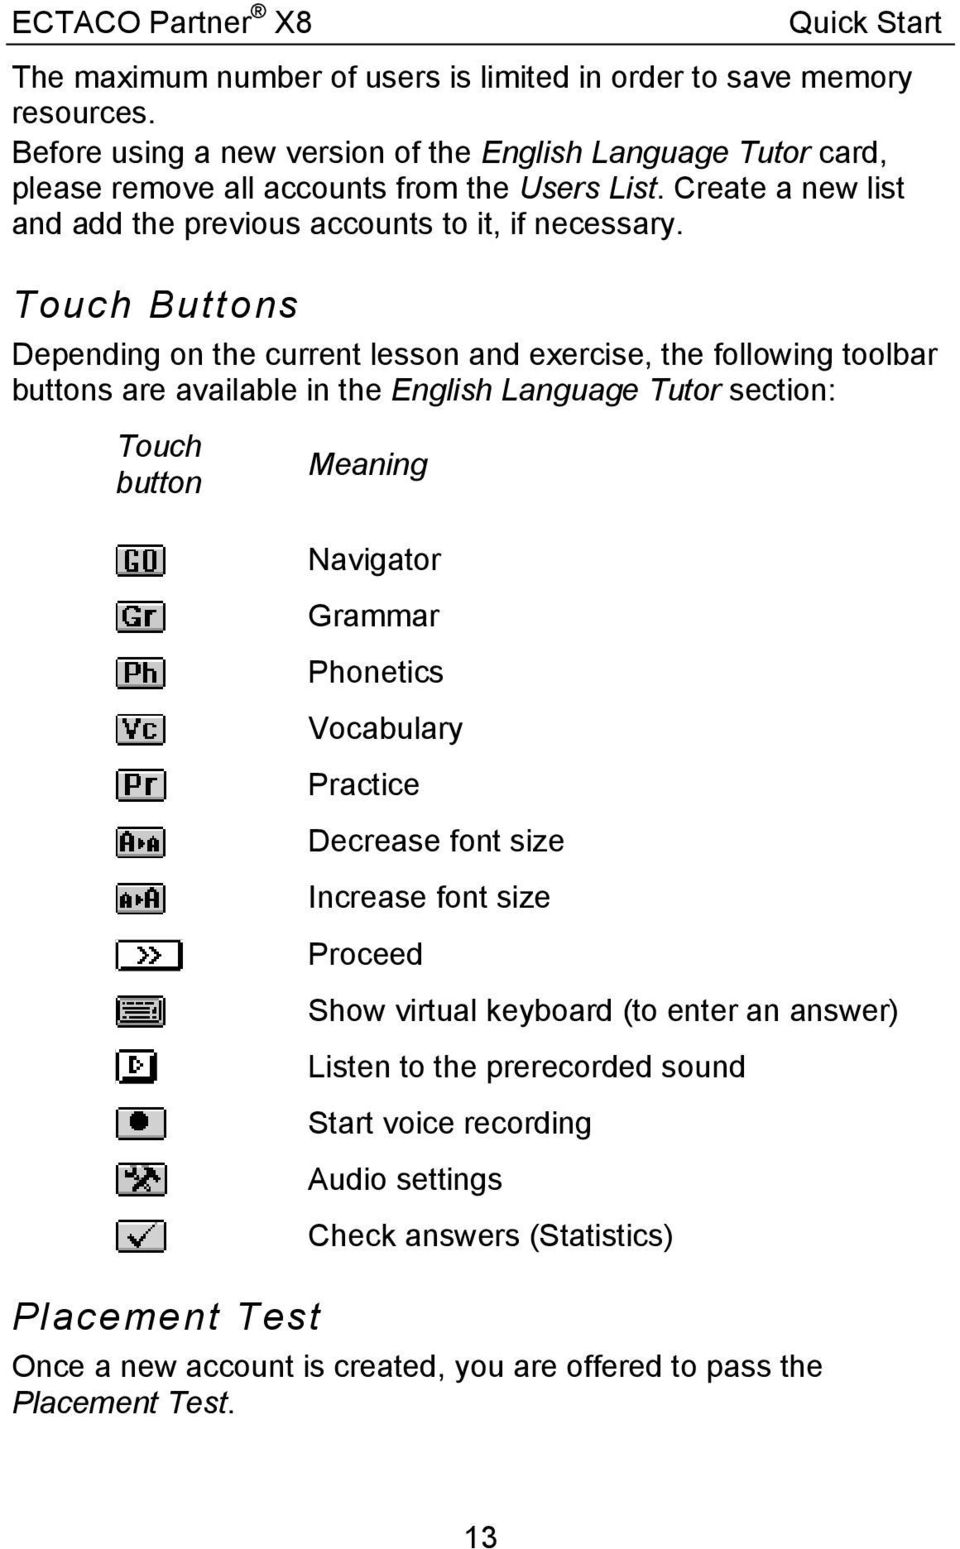 Touch Buttons Depending on the current lesson and exercise, the following toolbar buttons are available in the English Language Tutor section: Touch button Meaning Placement Test Navigator